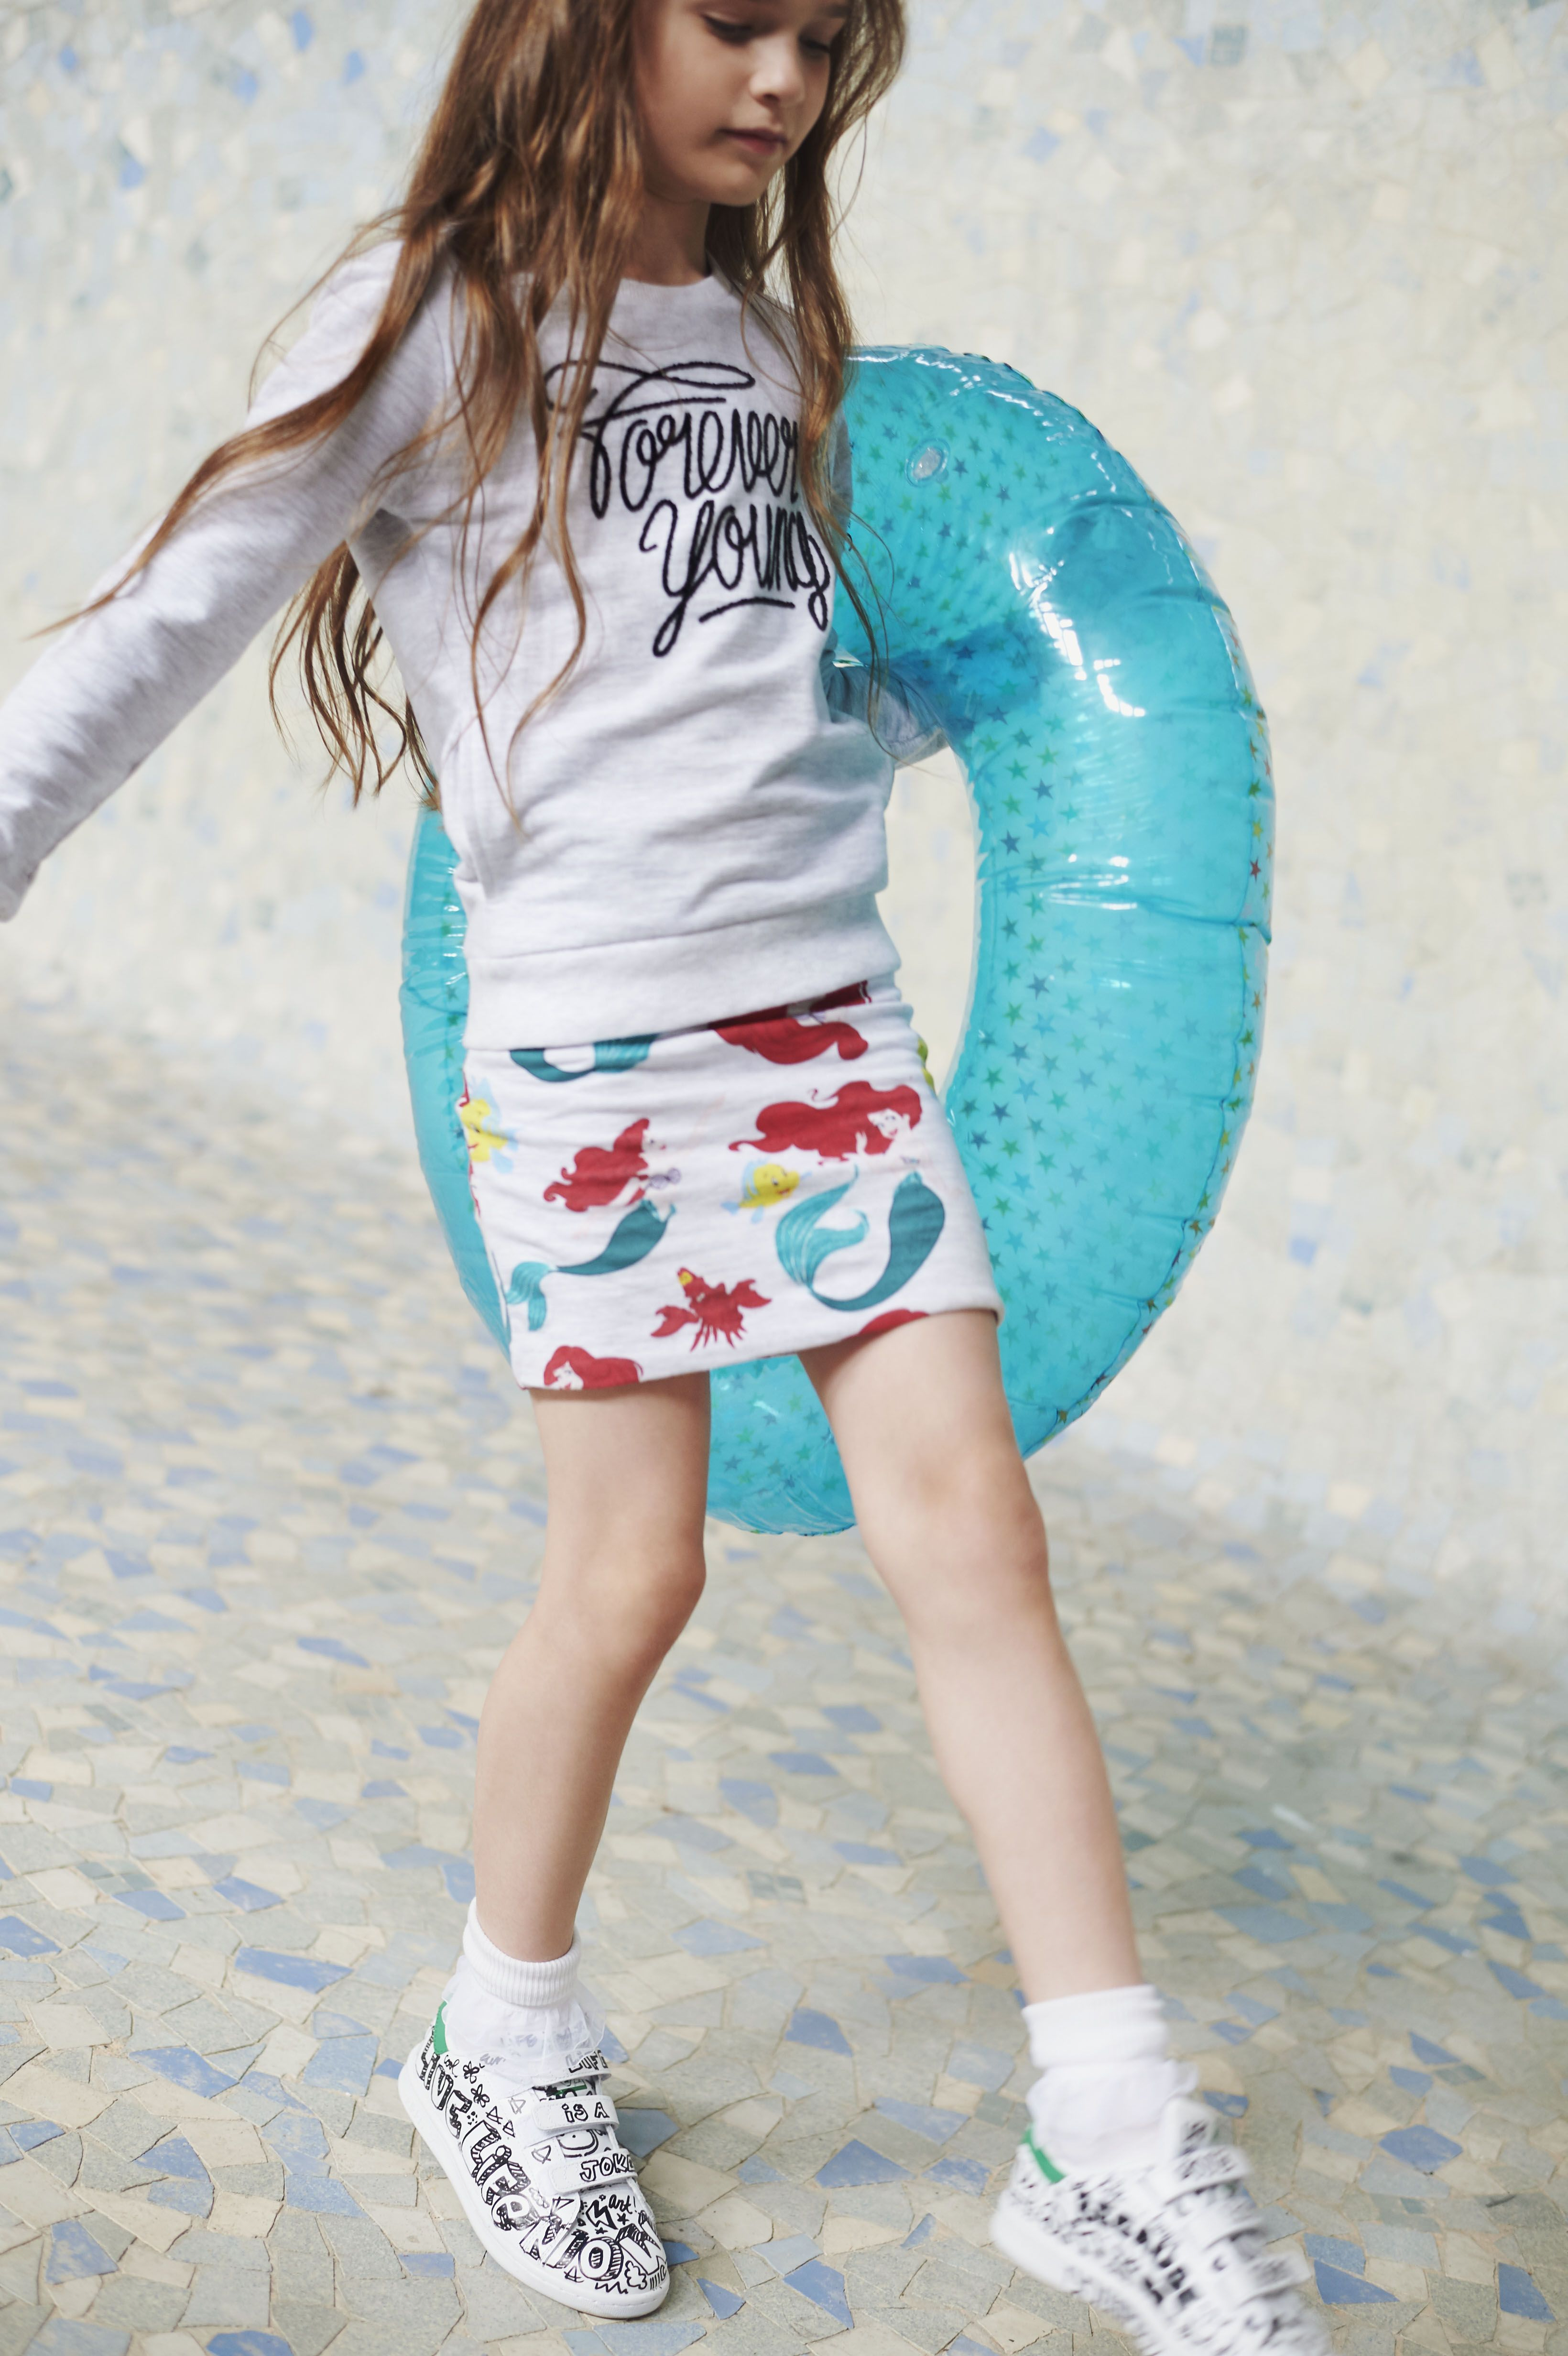 Sea creature skirt from Little Eleven Paris for summer kidswear